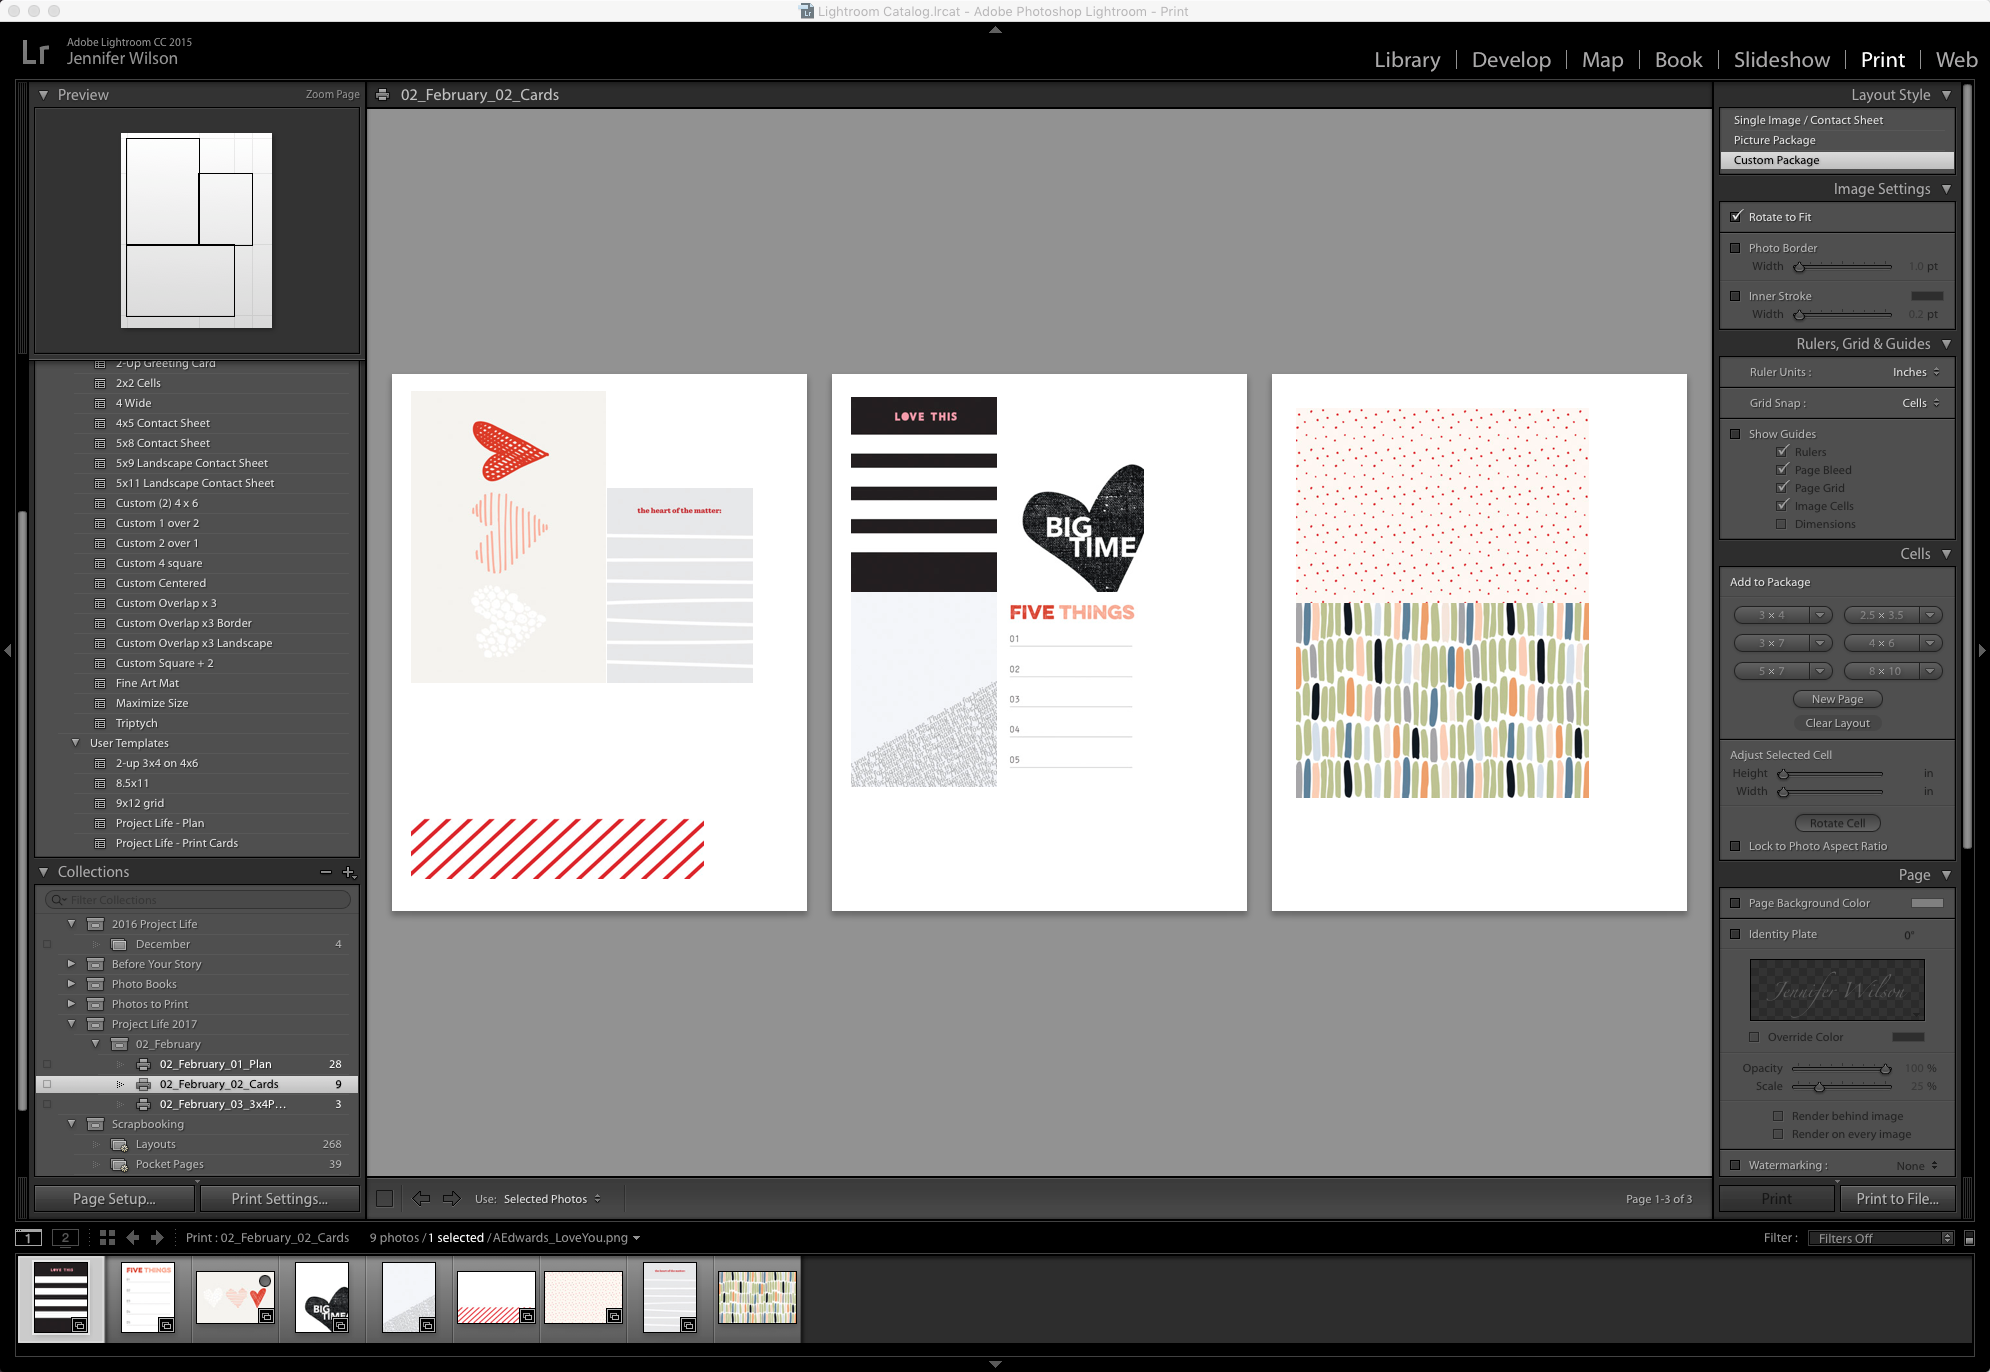 Download free templates for creating a hybrid Project Life spread using Lightroom and Photoshop.